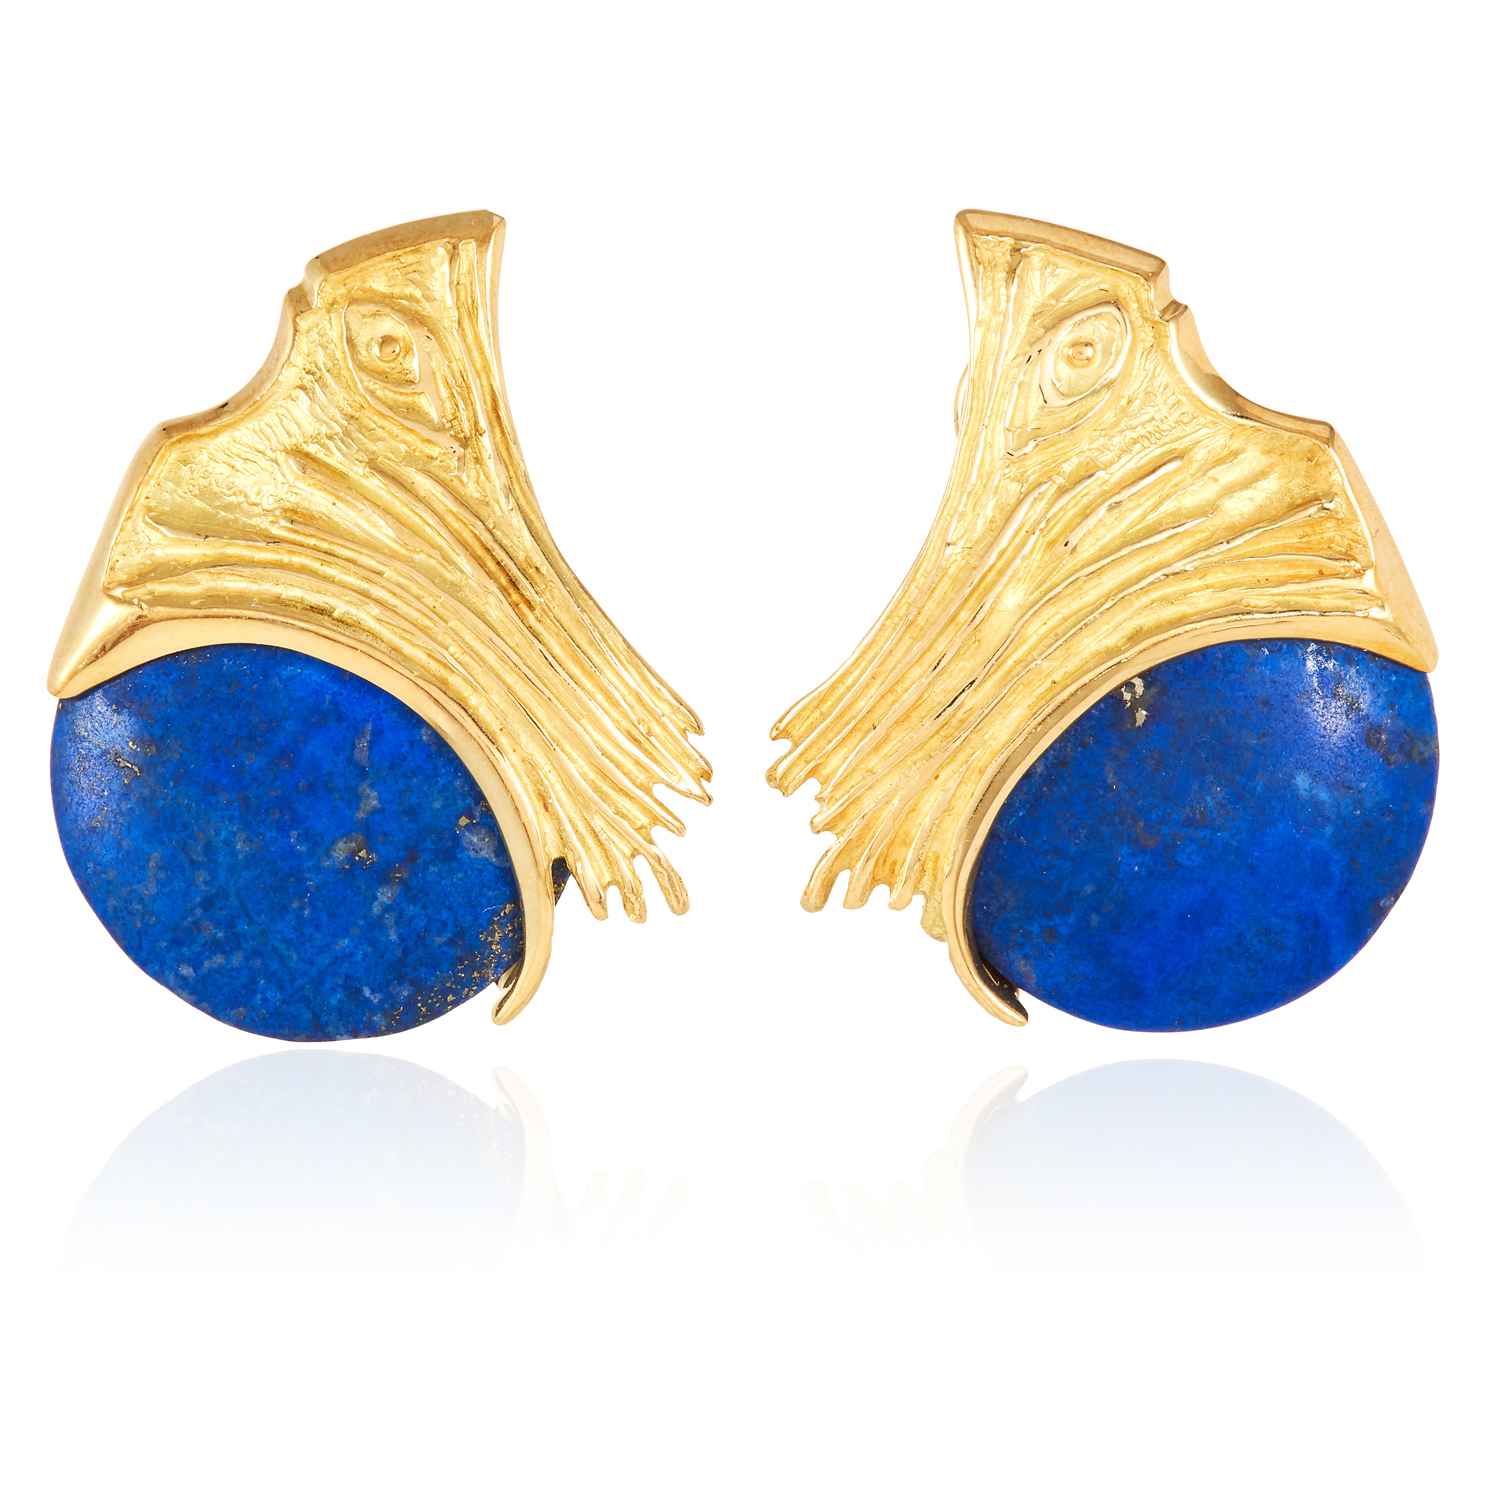 A PAIR OF LAPIS LAZULI EARRINGS in 18ct yellow gold, each designed as a polished lapis lazuli disc